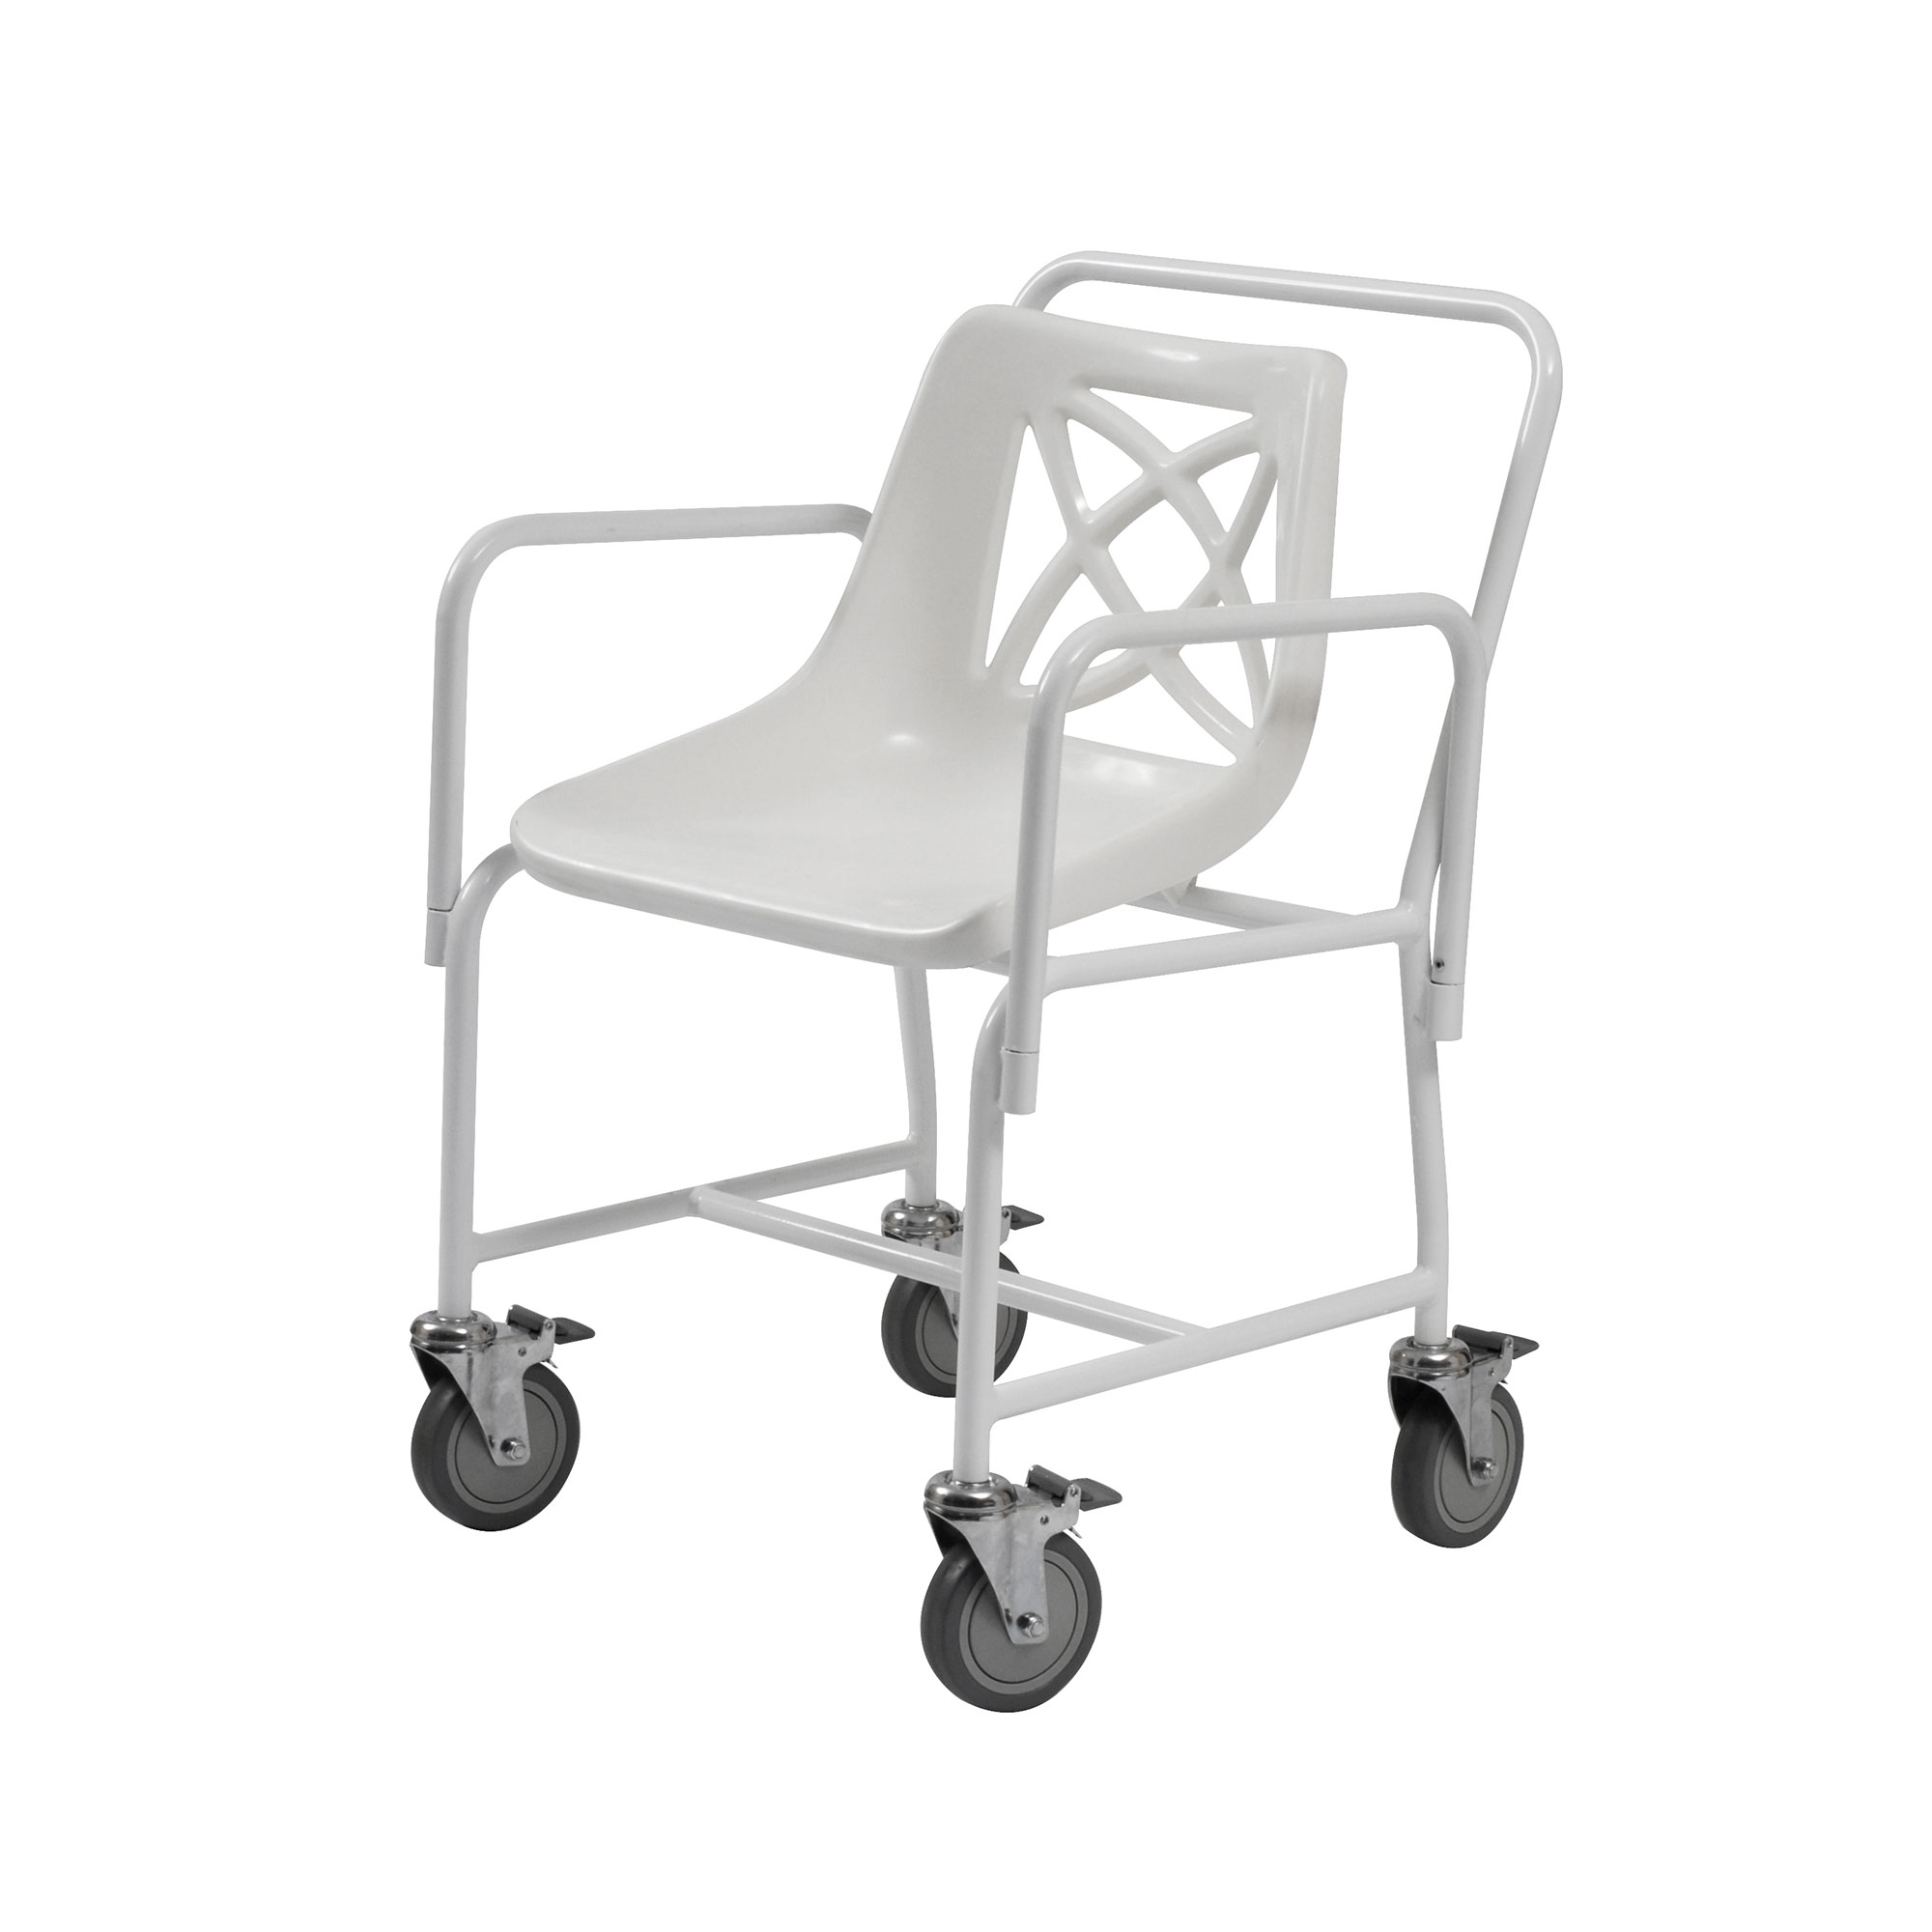 medical uncategorized size helping equipment sliding moen medicaid pvc of shower made chair people for full from